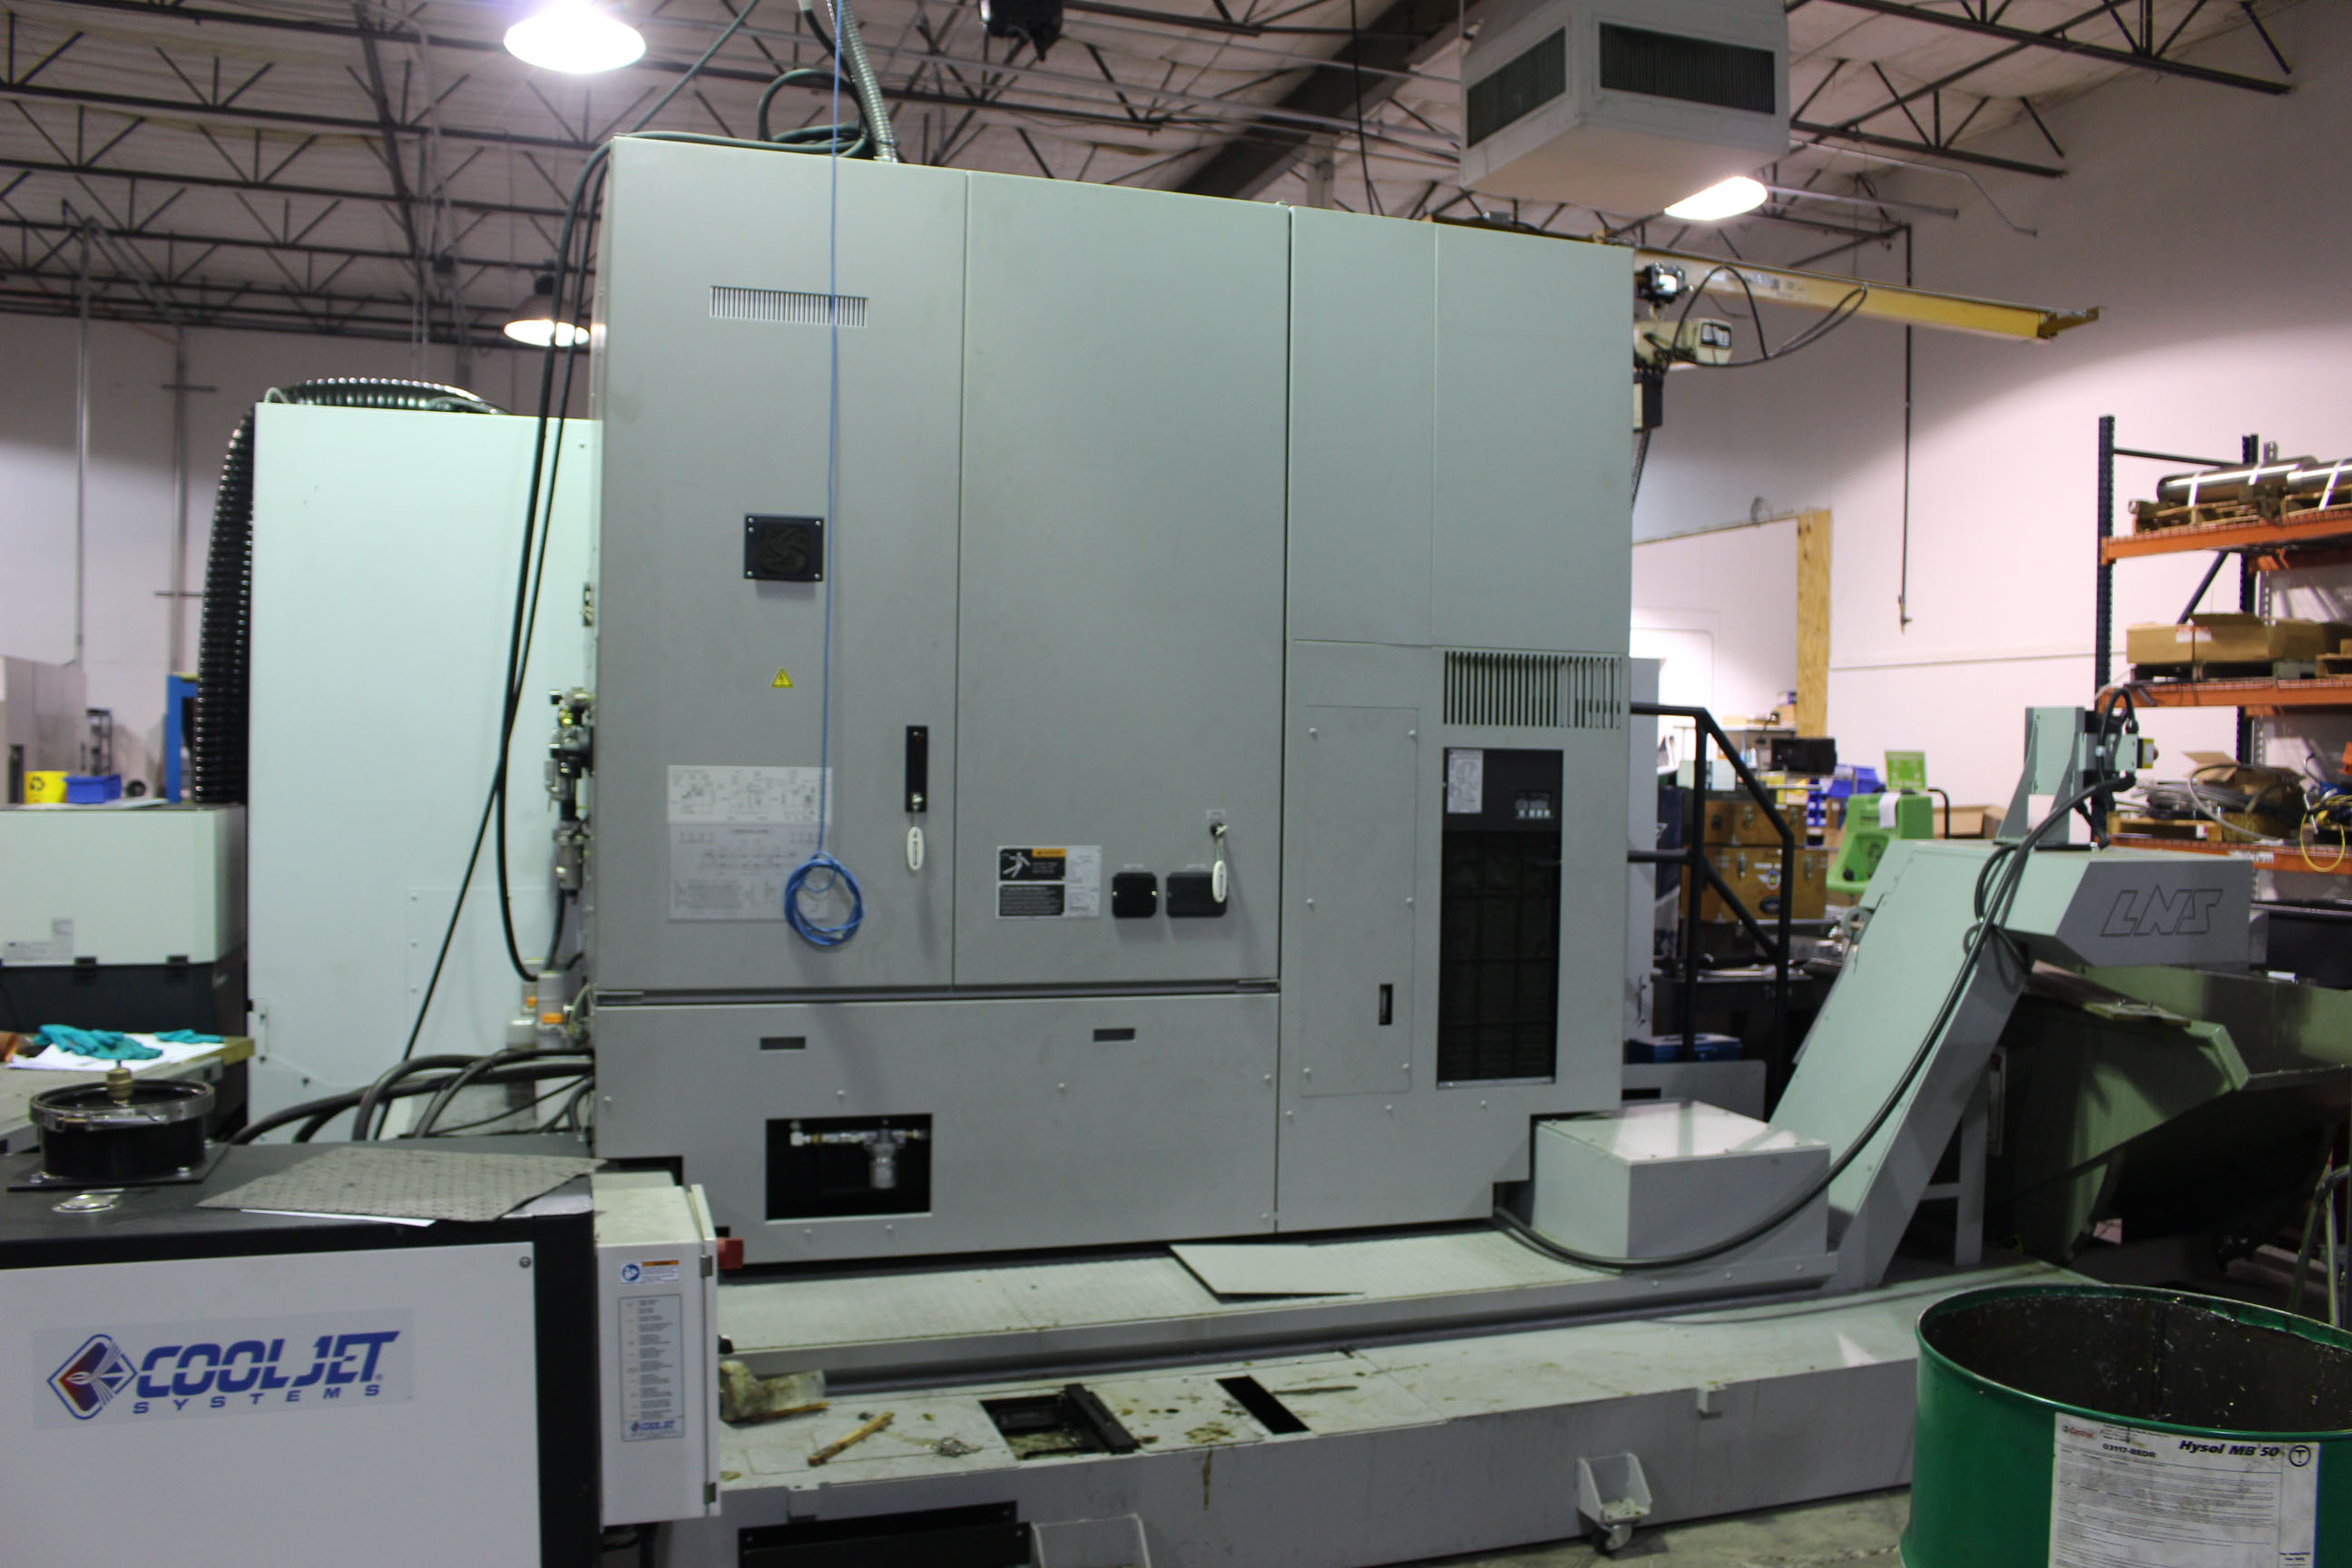 Lot 25 - VERTICAL MACHINING CENTER, MORI SEIKI MDL. NVX7000/50 4-AXIS, new 6/2014, DMG Mori FOIMD CNC control